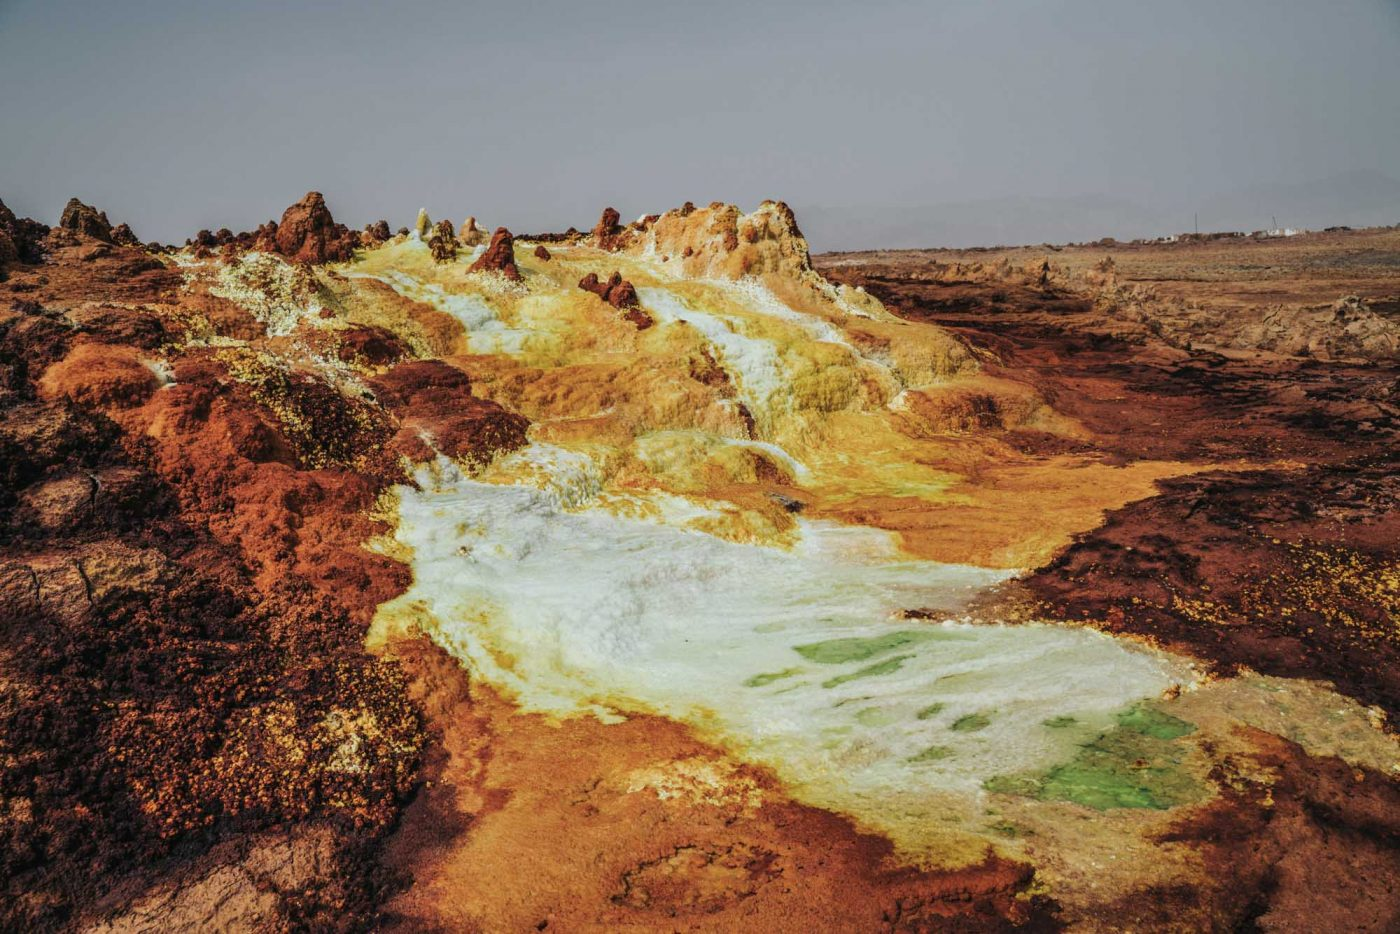 Dallol, Danakil Depression, Northern Ethiopia